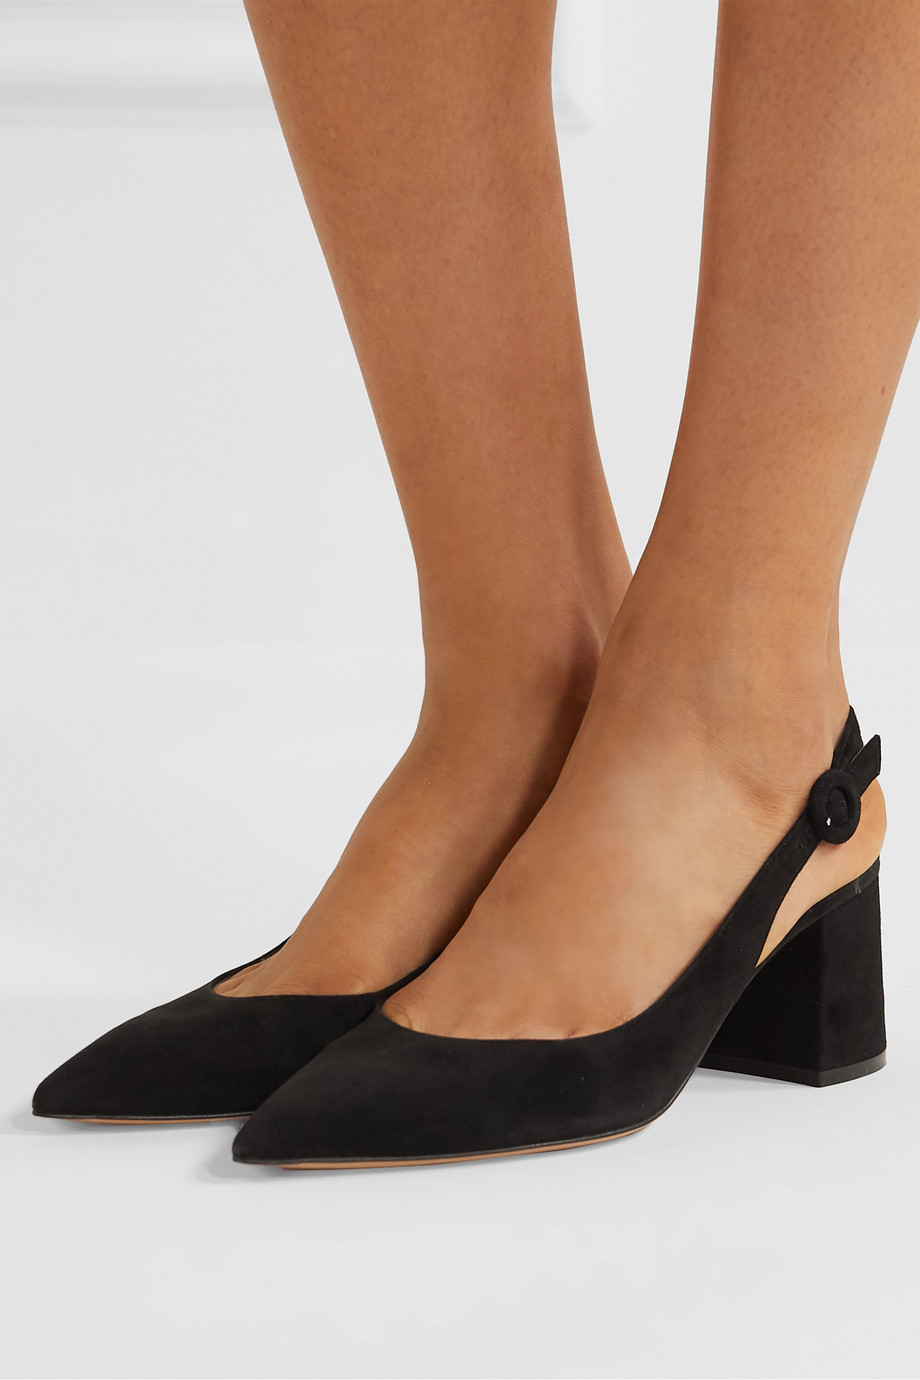 Gianvito Rossi 60 suede slingback pumps